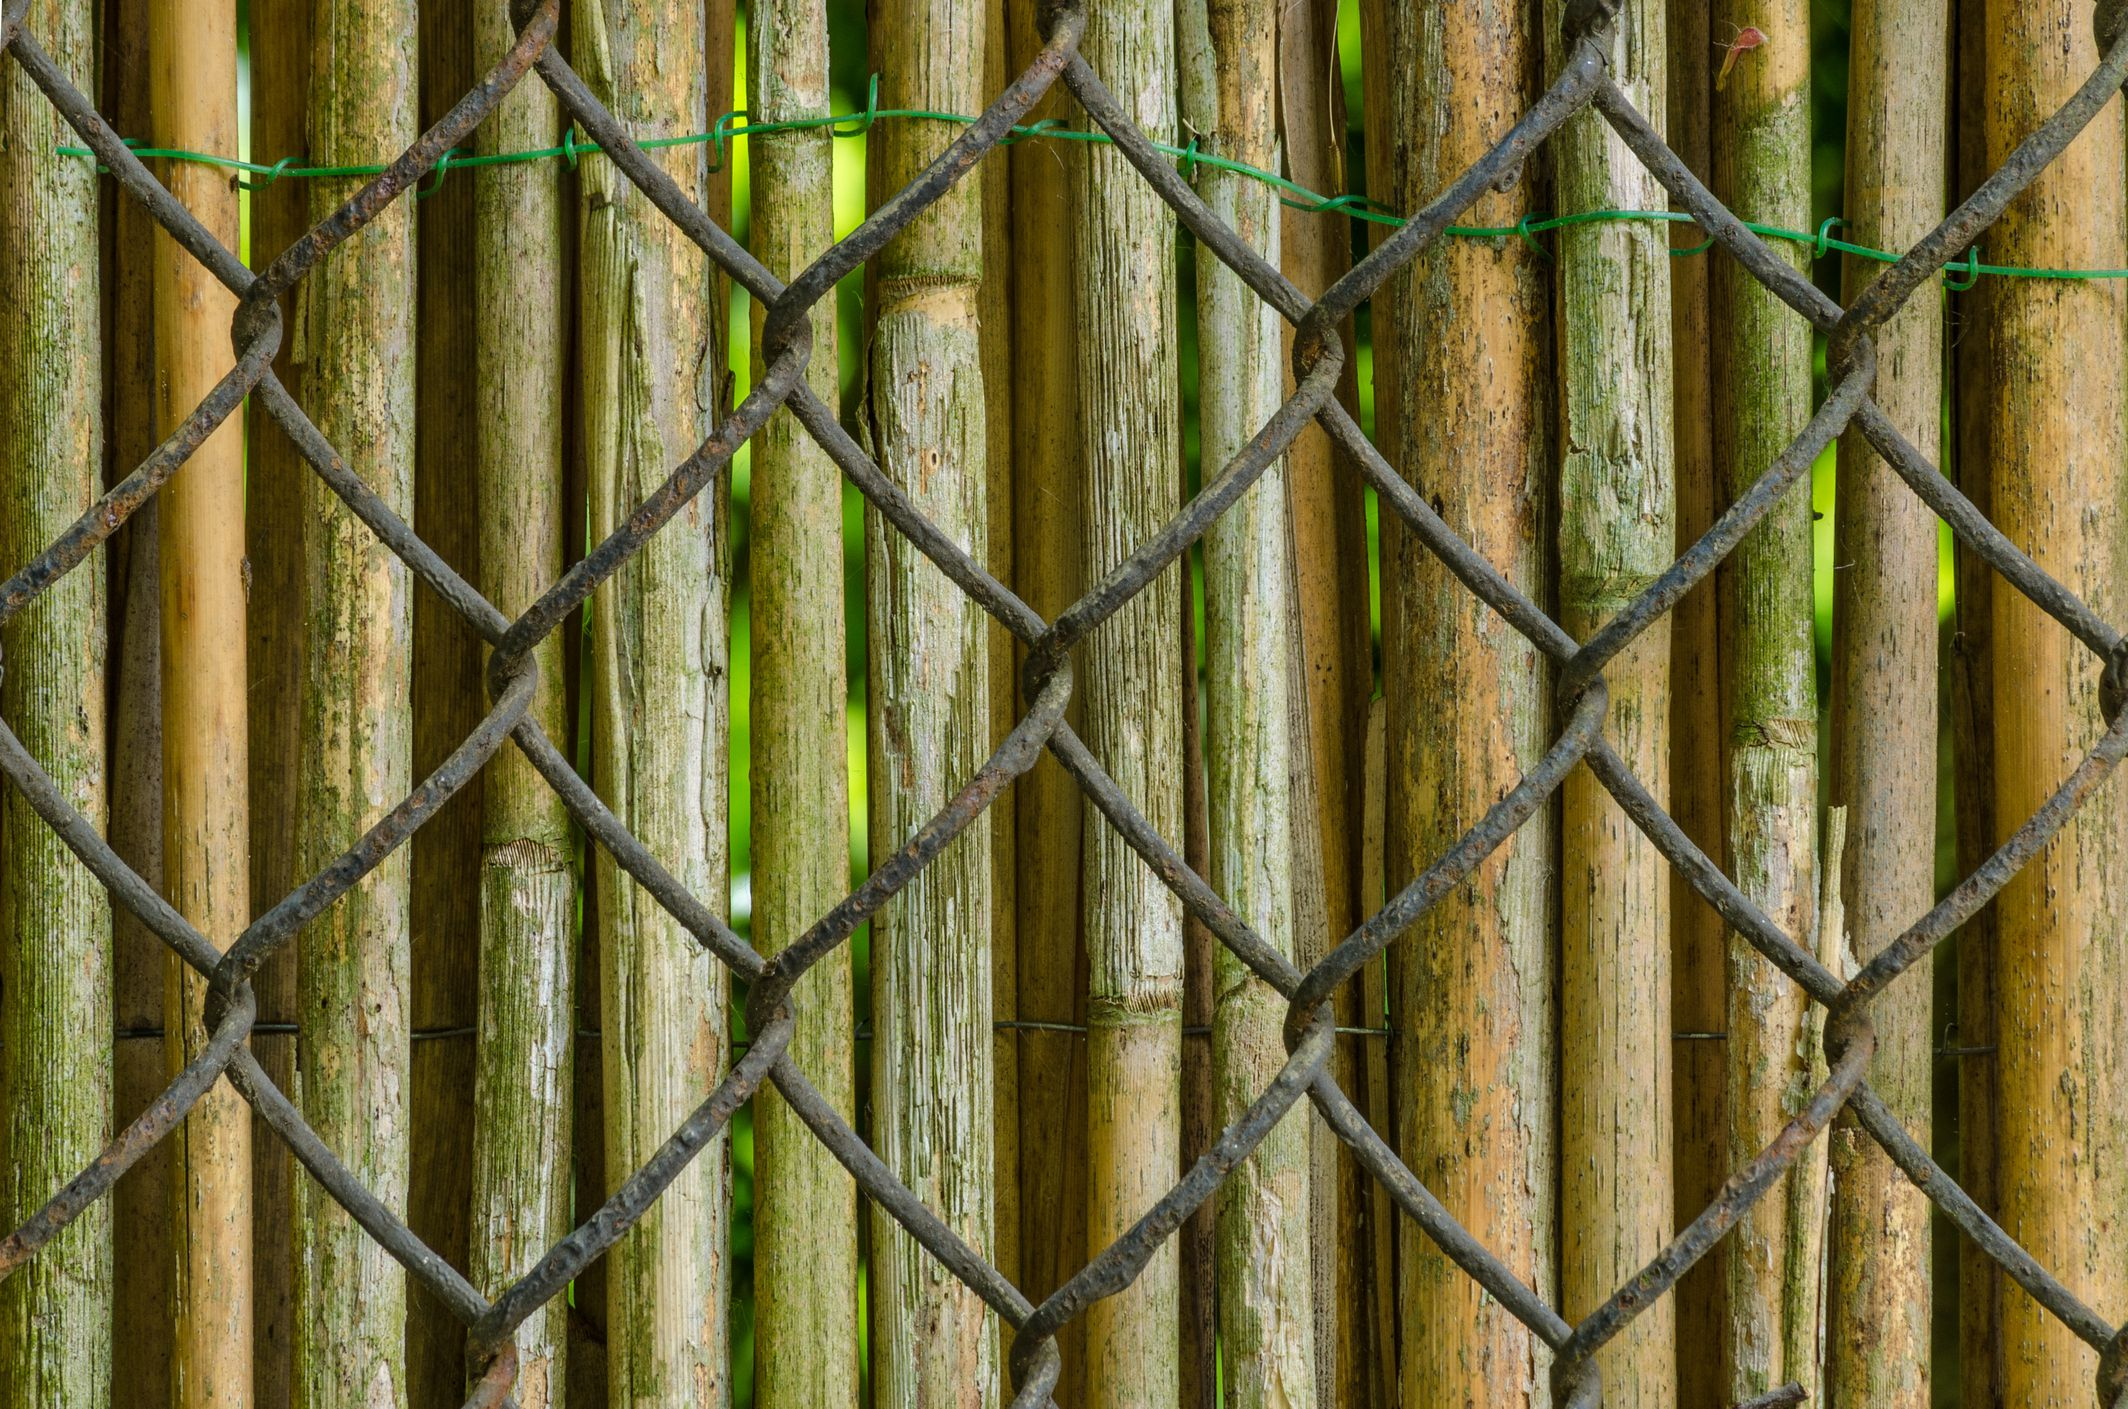 best bamboo cane pole stake all decor ideas for fences.htm how to cover up a chain link fence  how to cover up a chain link fence